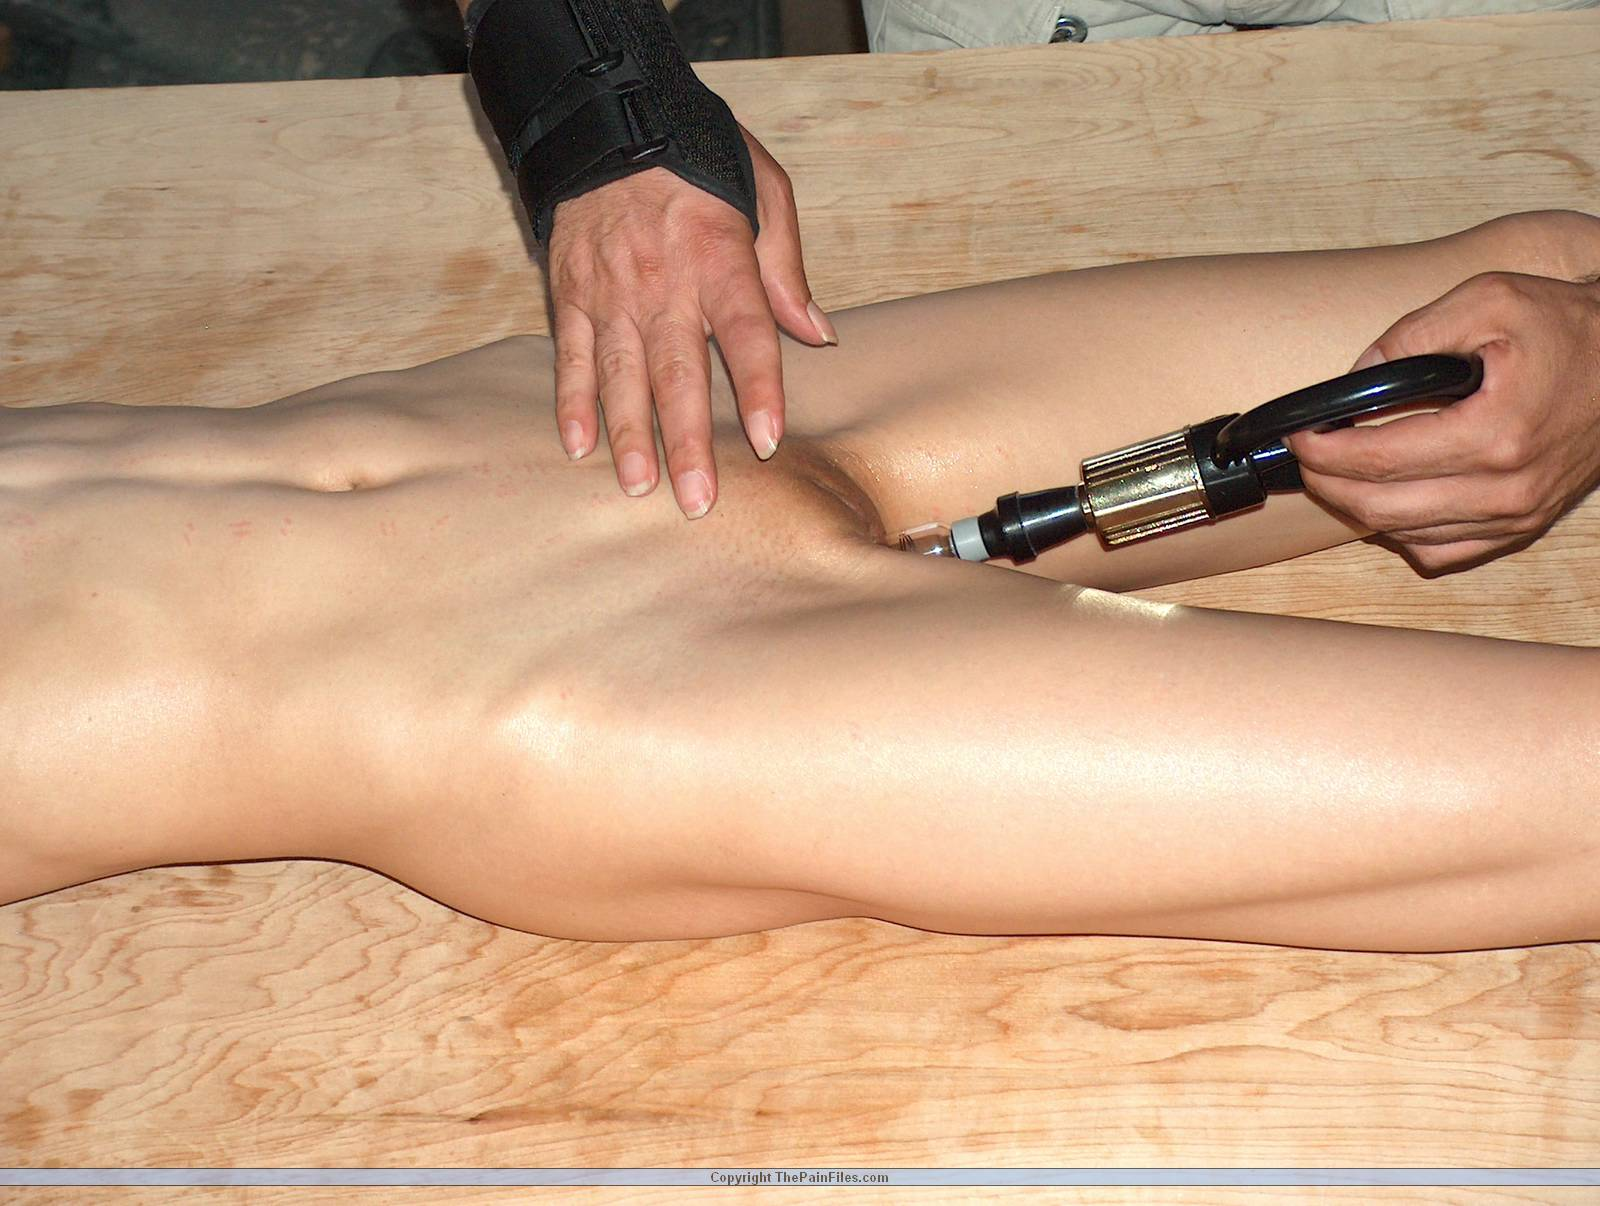 fn venus film bdsm